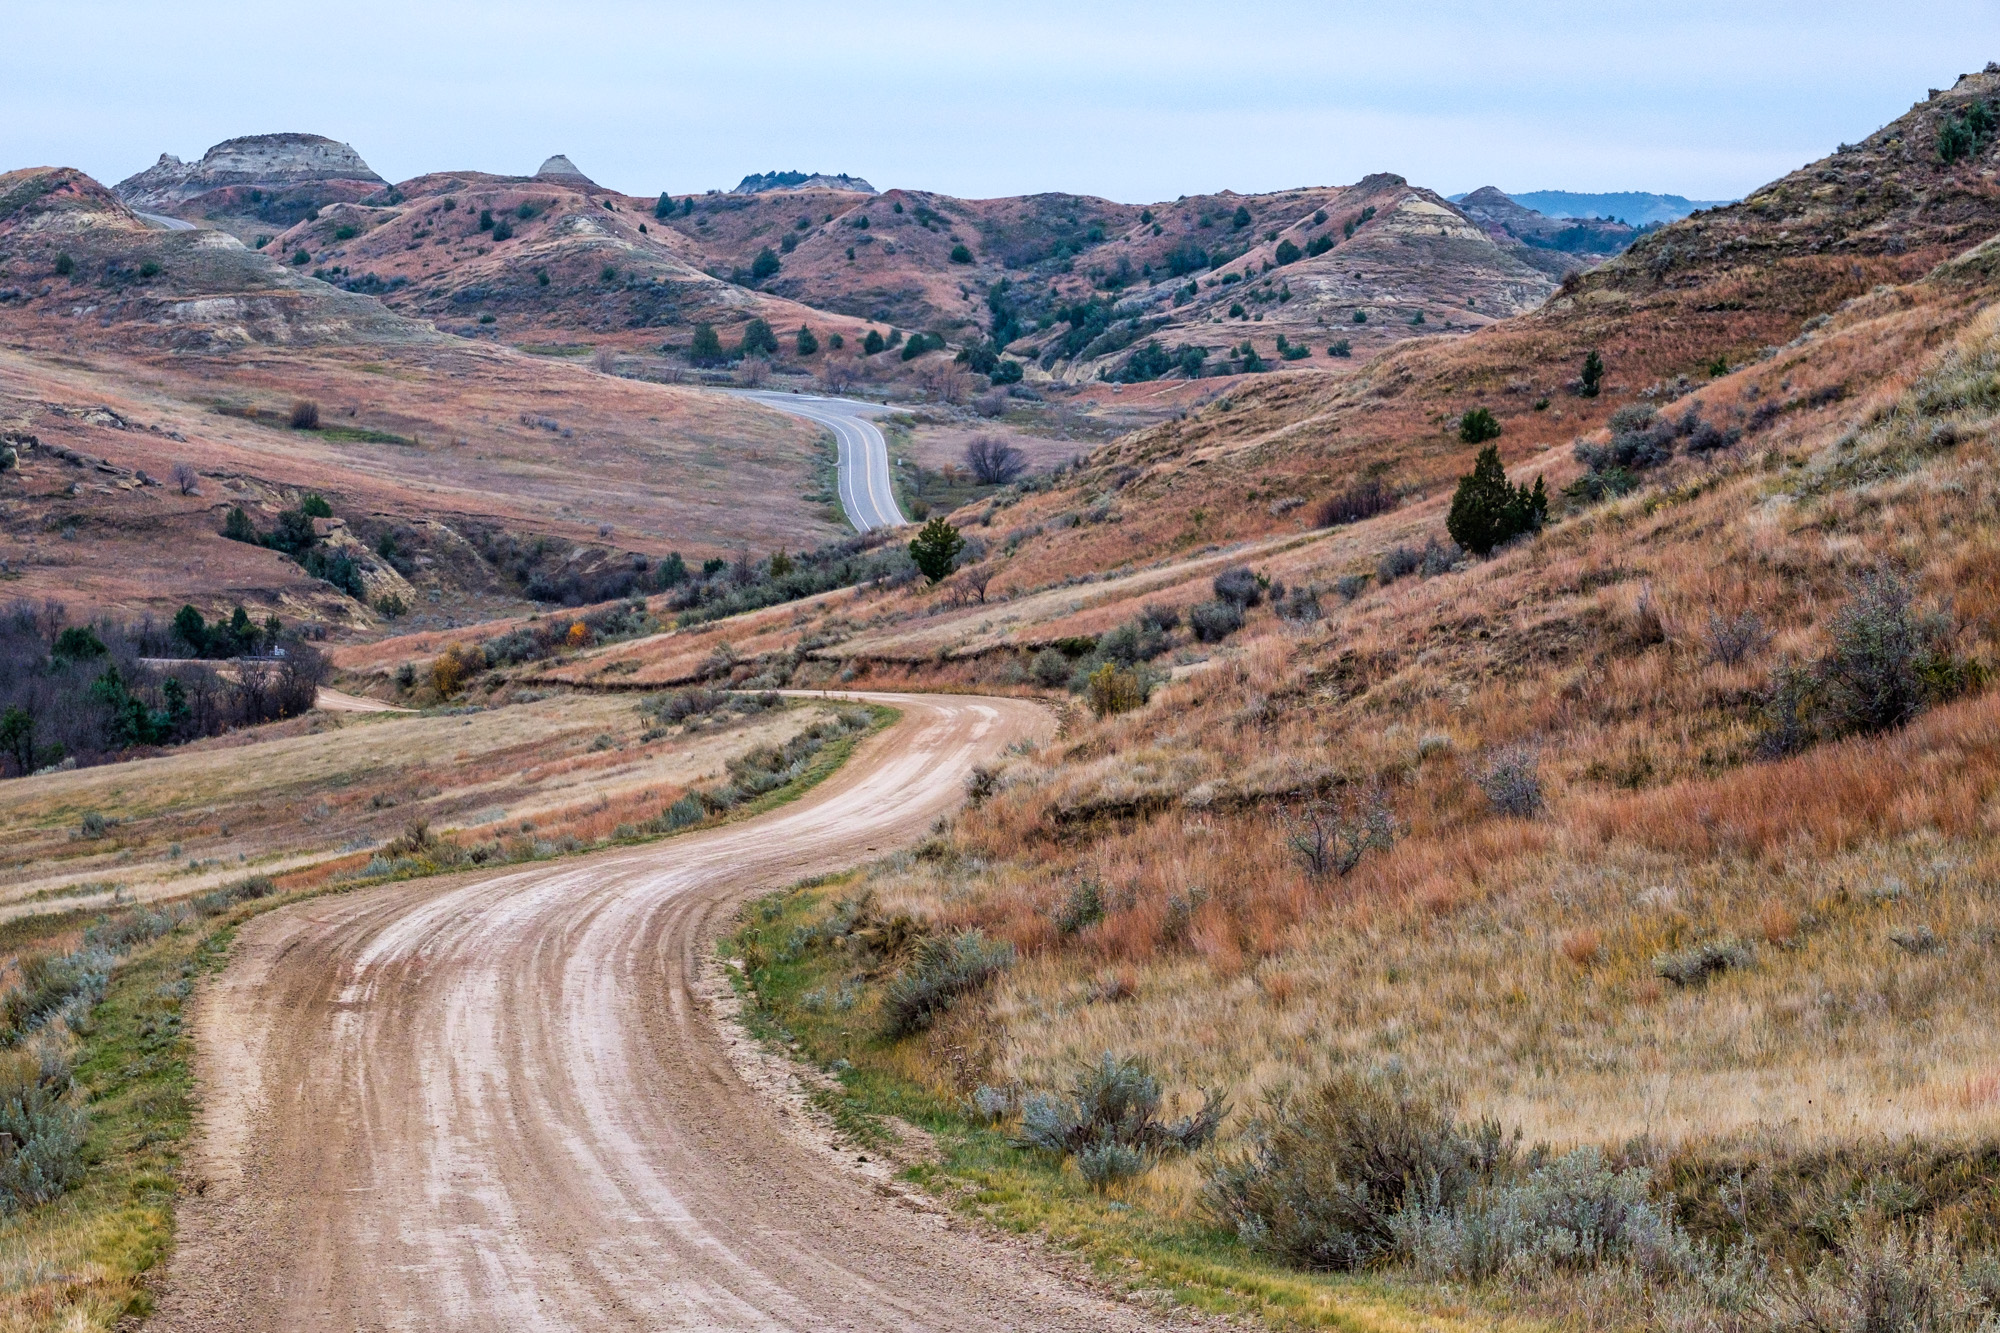 This is what most of the roads look like within the park...rolling grass and badlands.